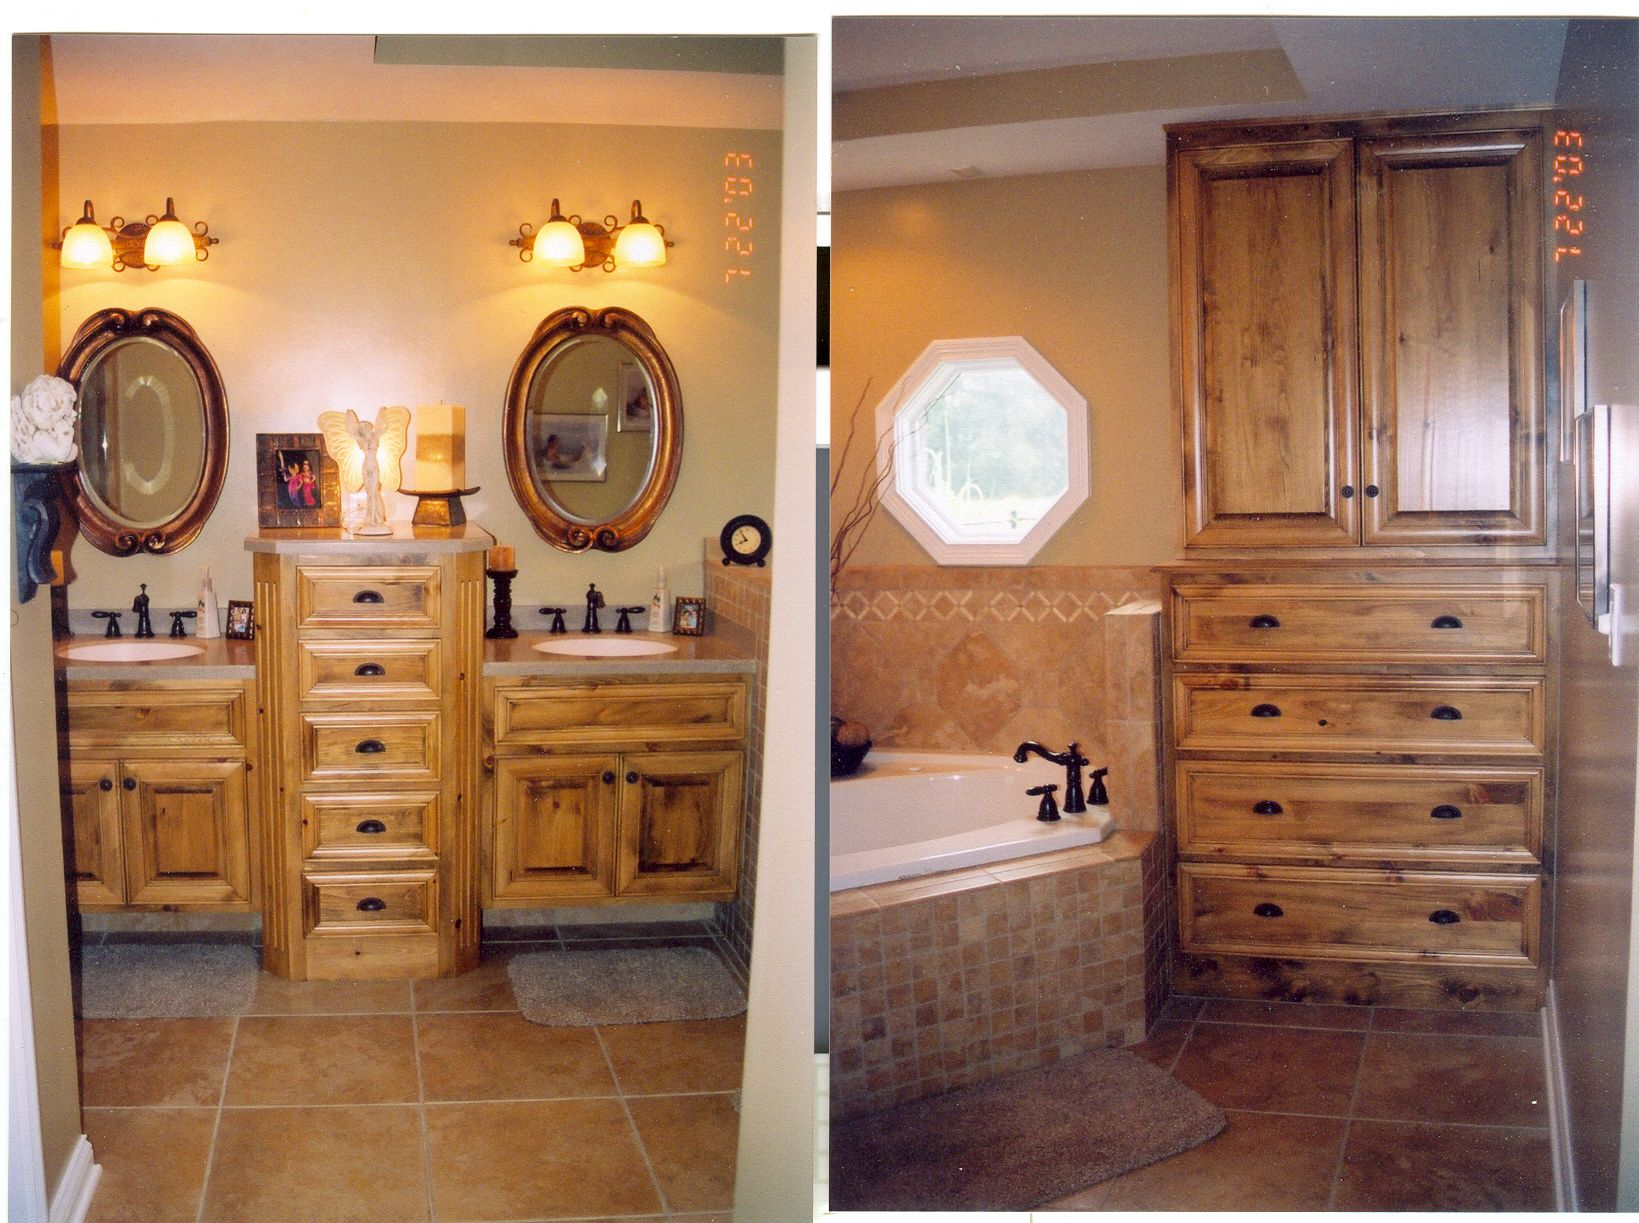 Knotty Pine bath to match master bedroom furniture | Projects By ...